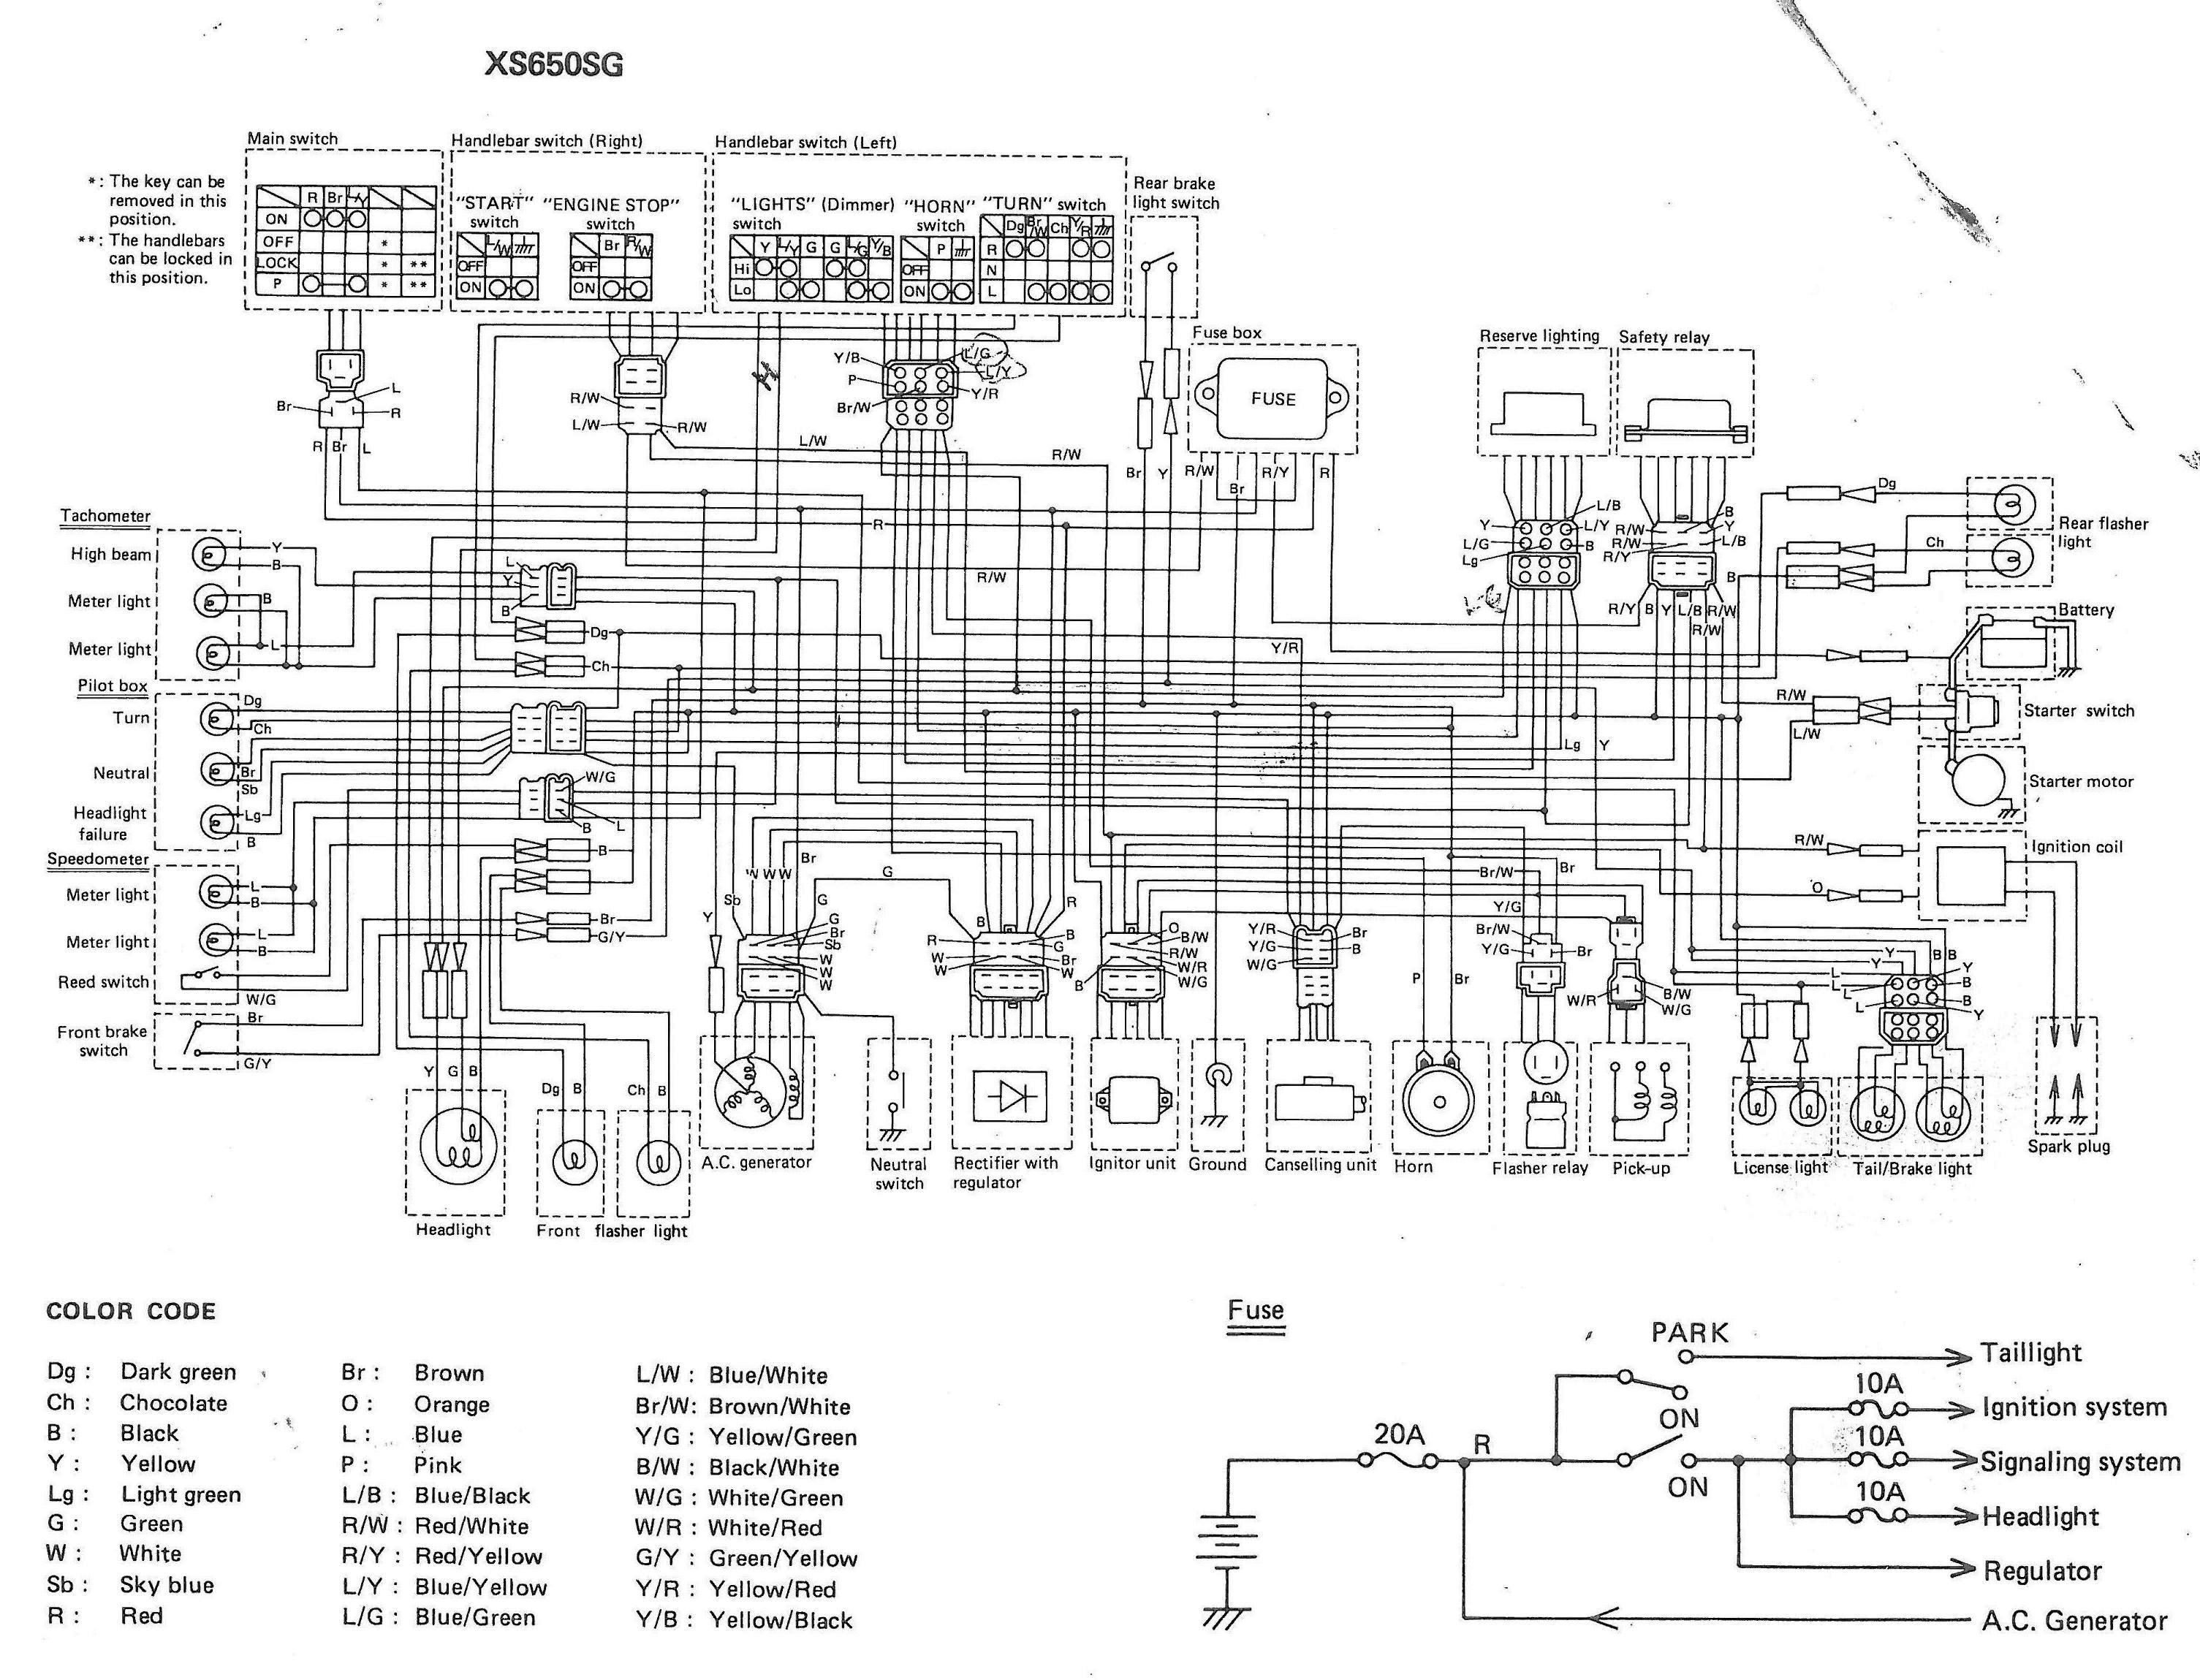 xs650 80 xs650g and sg wiring diagrams thexscafe rh thexscafedotcom wordpress com 1981 Yamaha XS400 Wiring-Diagram XS650 Chopper Wiring Diagram